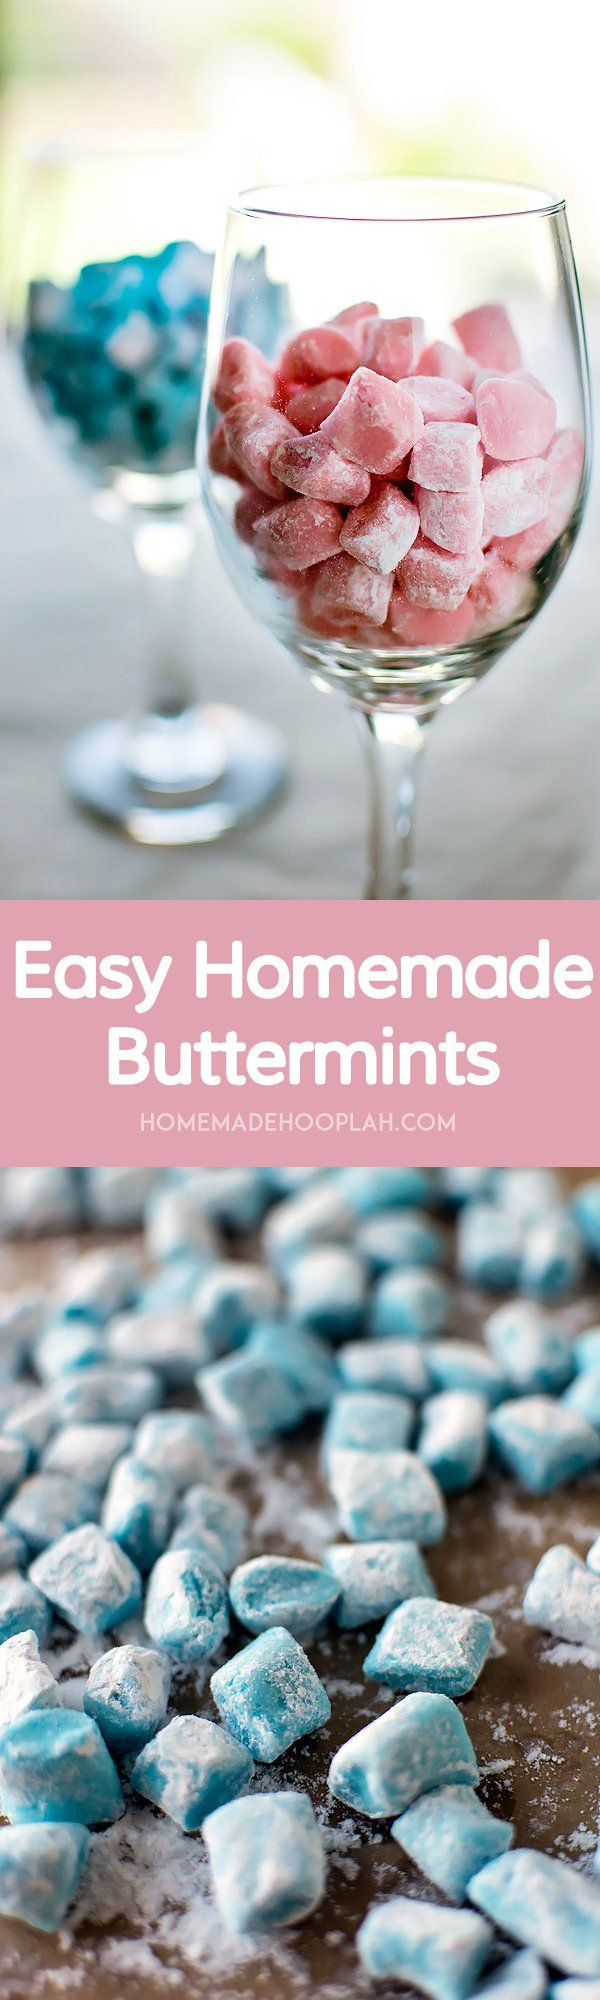 Easy Homemade Buttermints! Melt-in-your-mouth buttermints that are surprisingly…